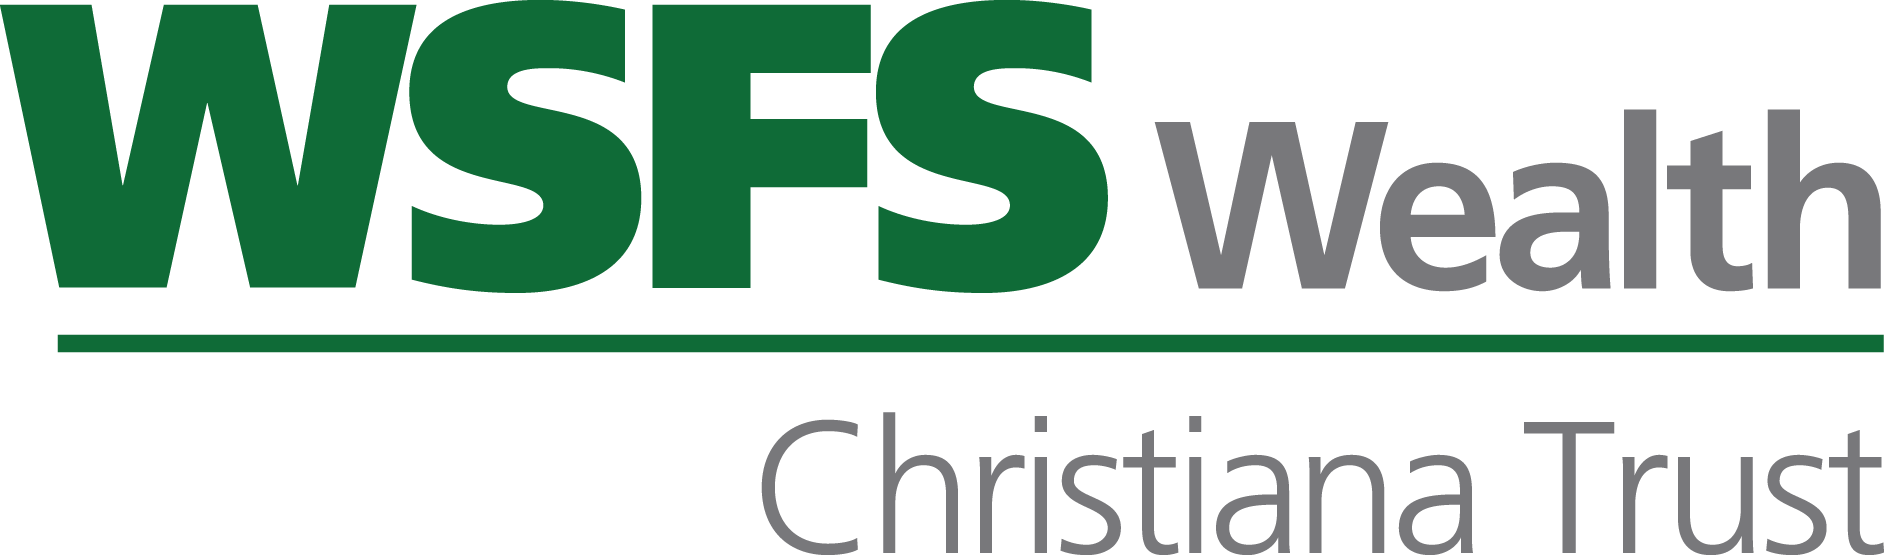 wsfs-wealth-christiana-trust-logo